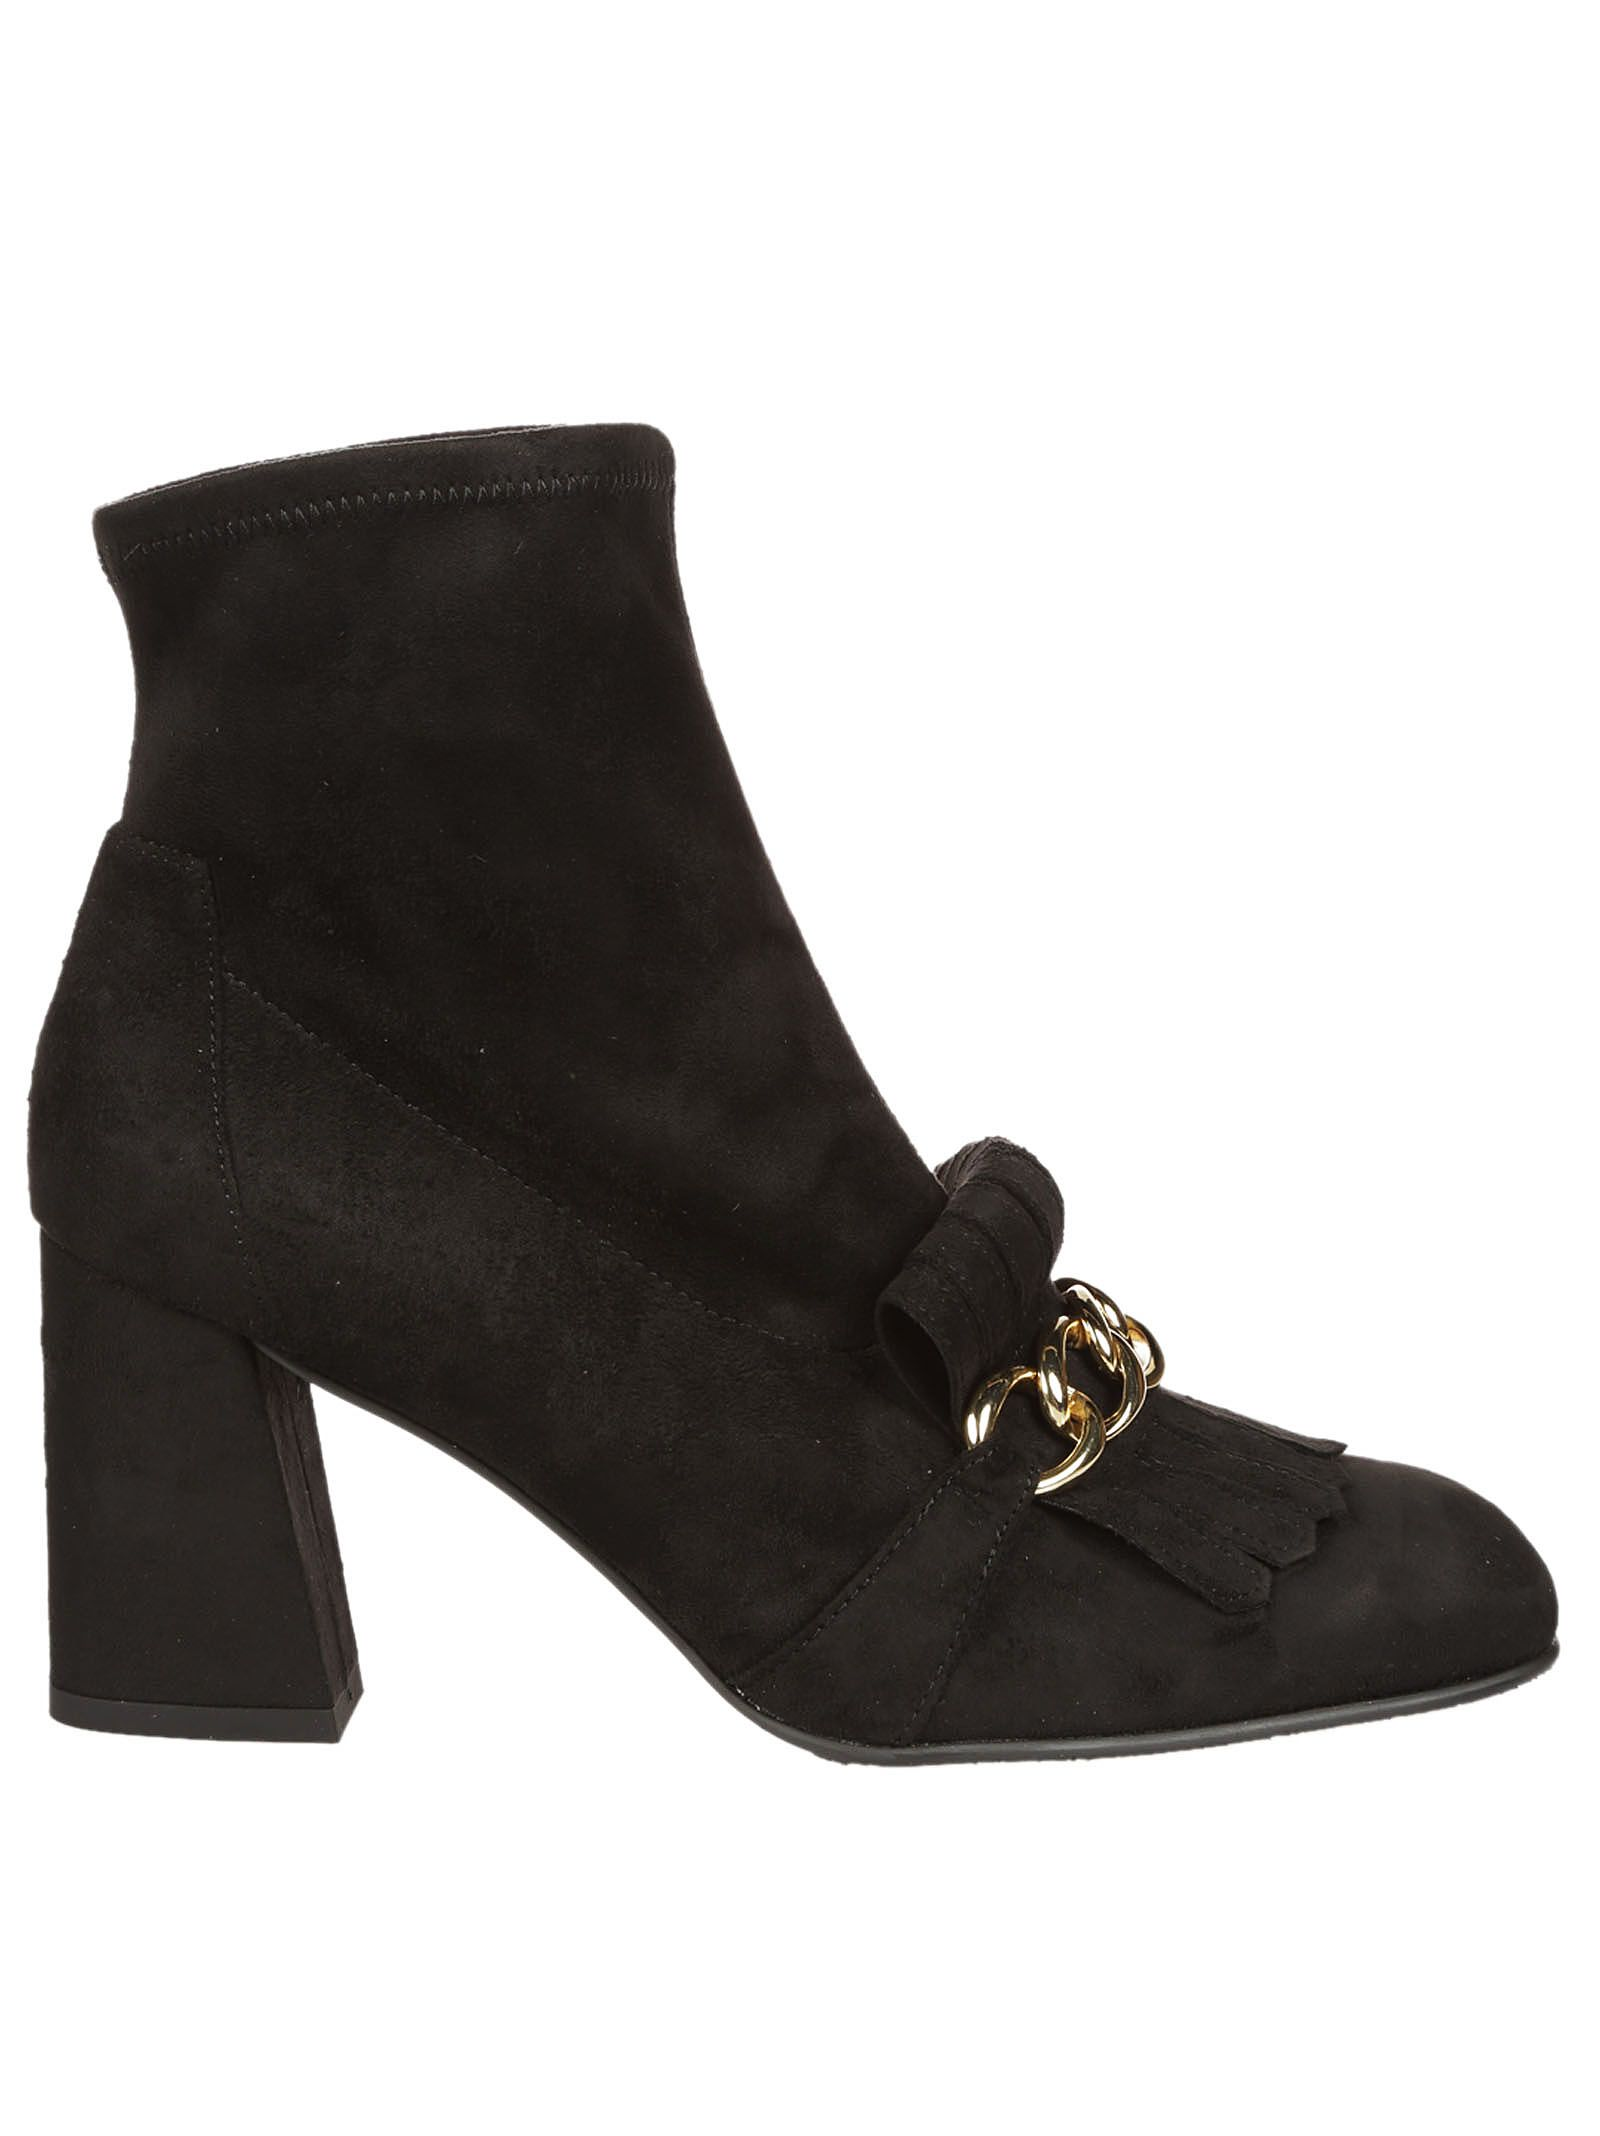 Stuart Weitzman Ring Leader Ankle Boots